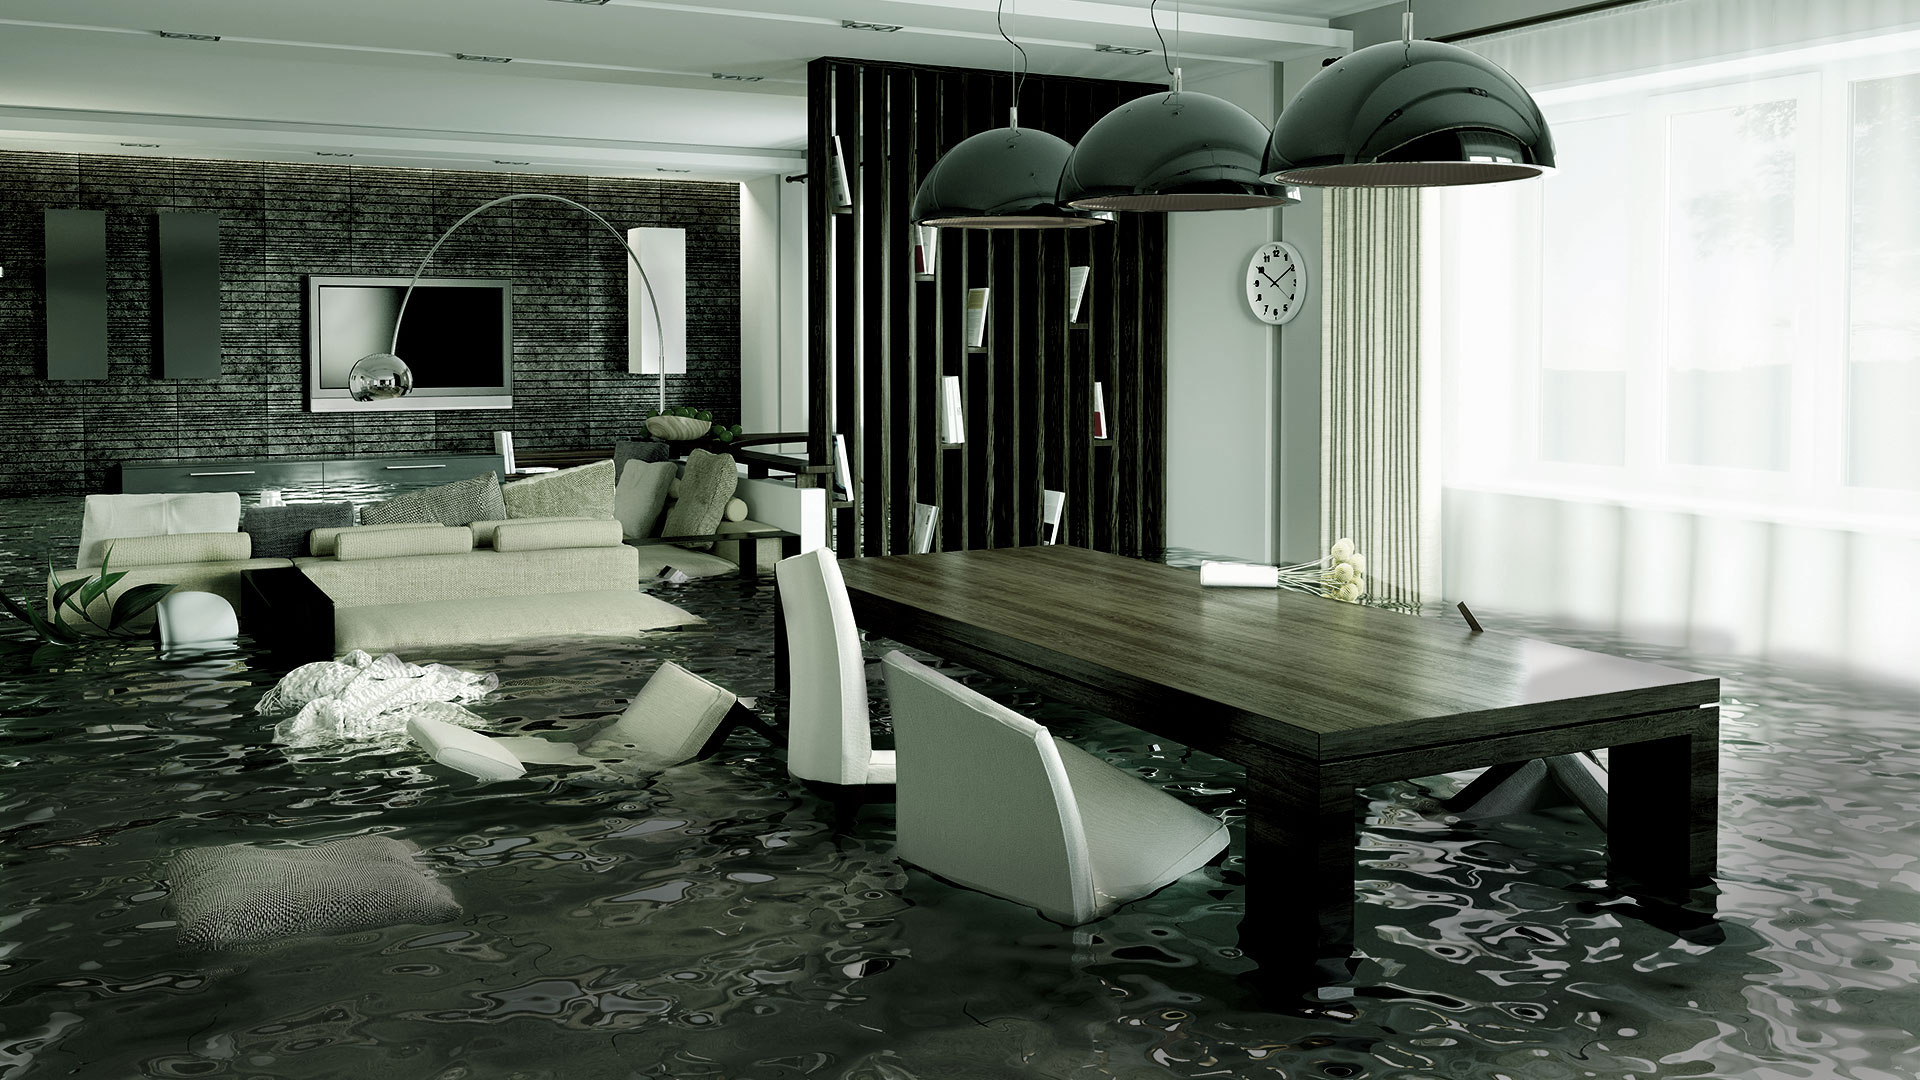 Mishawaka Water Damage Restoration